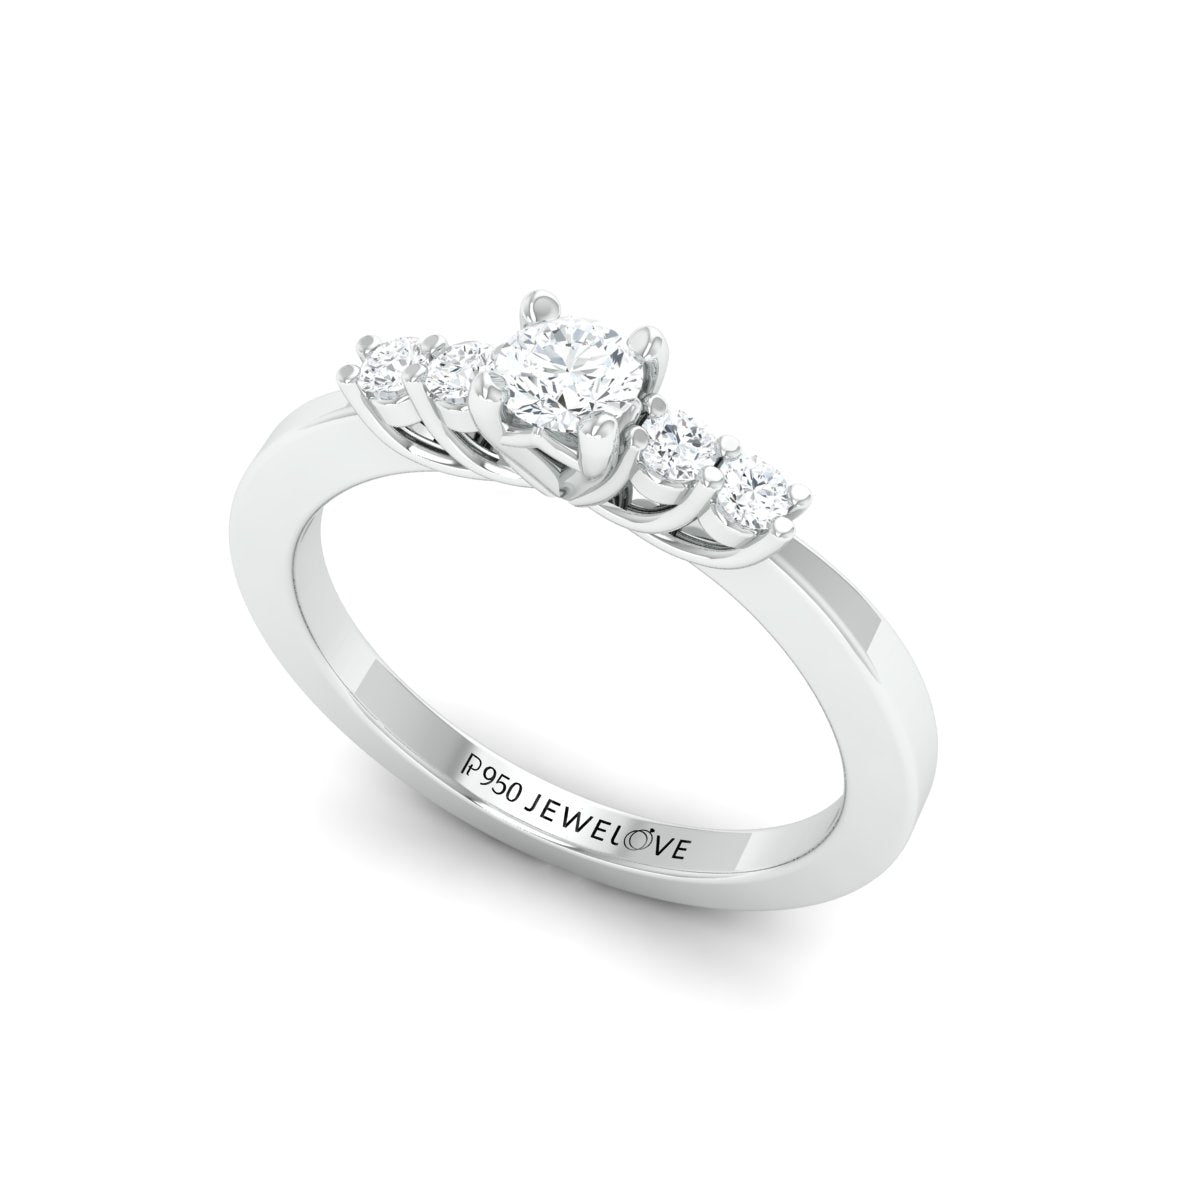 20 Pointer Solitaire Platinum Ring with Diamond Accents for Women JL PT 323